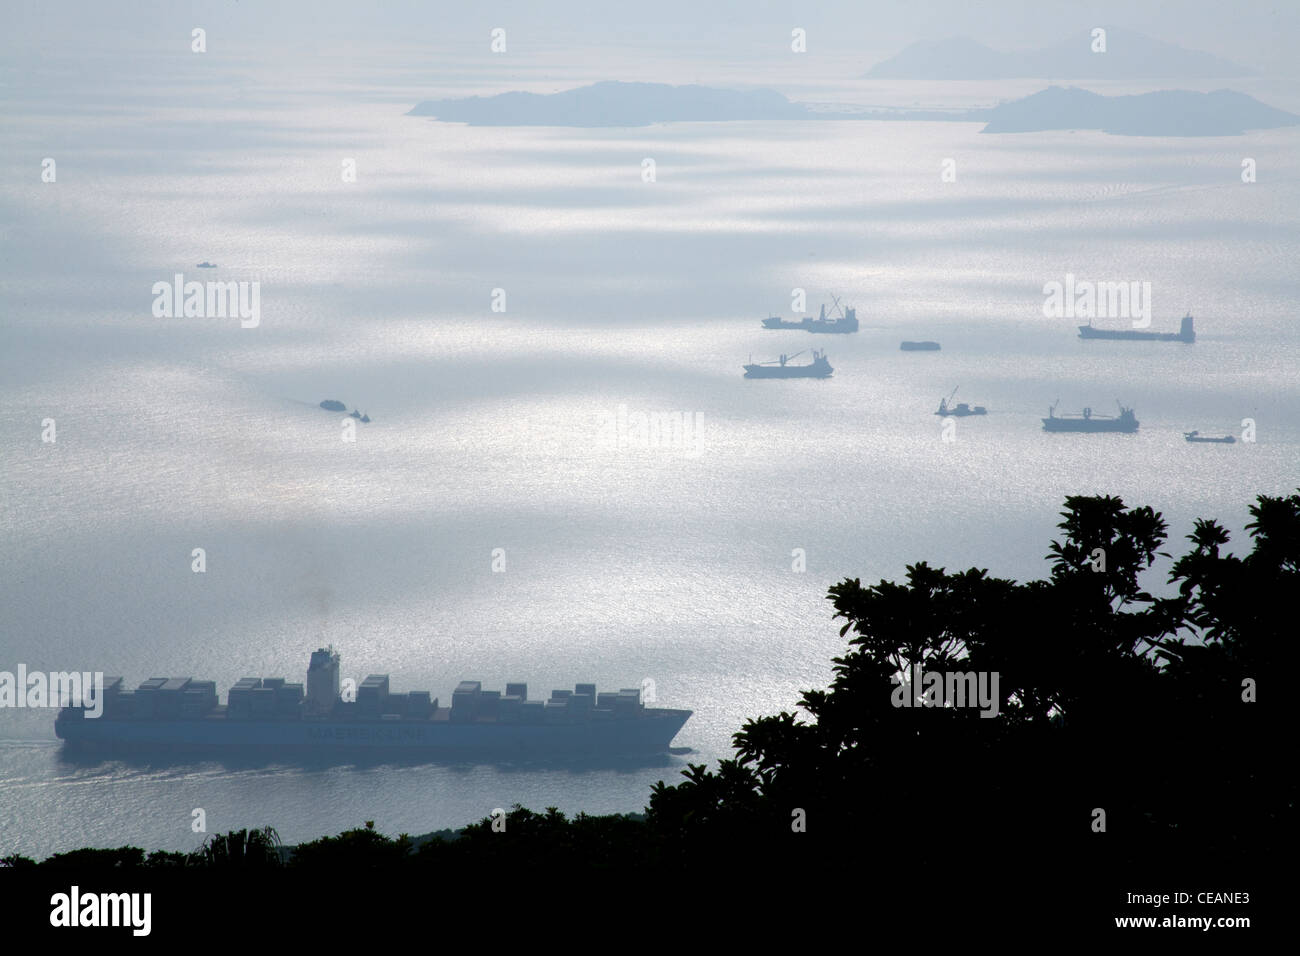 Shipping in the South China sea seen from the garden of the governor's summer residence Victoria Peak Hong Kong - Stock Image